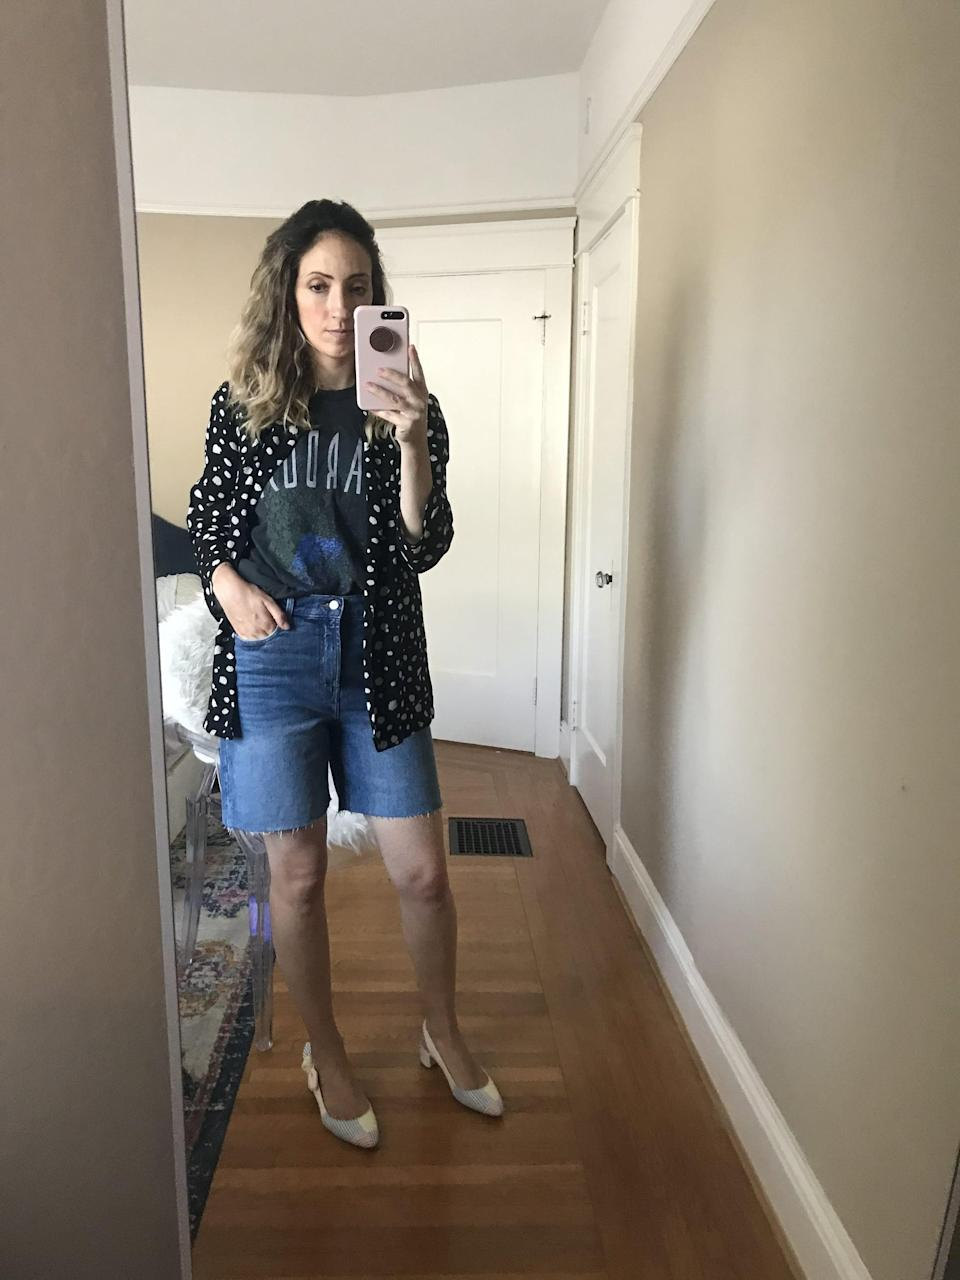 """<p><strong>The item:</strong> <span>High-Waisted Relaxed Cut-Off Jean Shorts</span> ($20, originally $30) </p> <p><strong>What our editor said:</strong> """"For starters, the fabric is soft along the inner thigh - I'm talking NO CHAFE, even on walks - and the shorts are stretchy without looking that way. The wash is slightly distressed, which makes me want to wear them with casual T-shirts and tailored blazers."""" - RB<br> If you want to read more, here is the <a href=""""https://www.popsugar.com/fashion/old-navy-denim-bermuda-shorts-47578500"""" class=""""link rapid-noclick-resp"""" rel=""""nofollow noopener"""" target=""""_blank"""" data-ylk=""""slk:complete review"""">complete review</a>.</p>"""